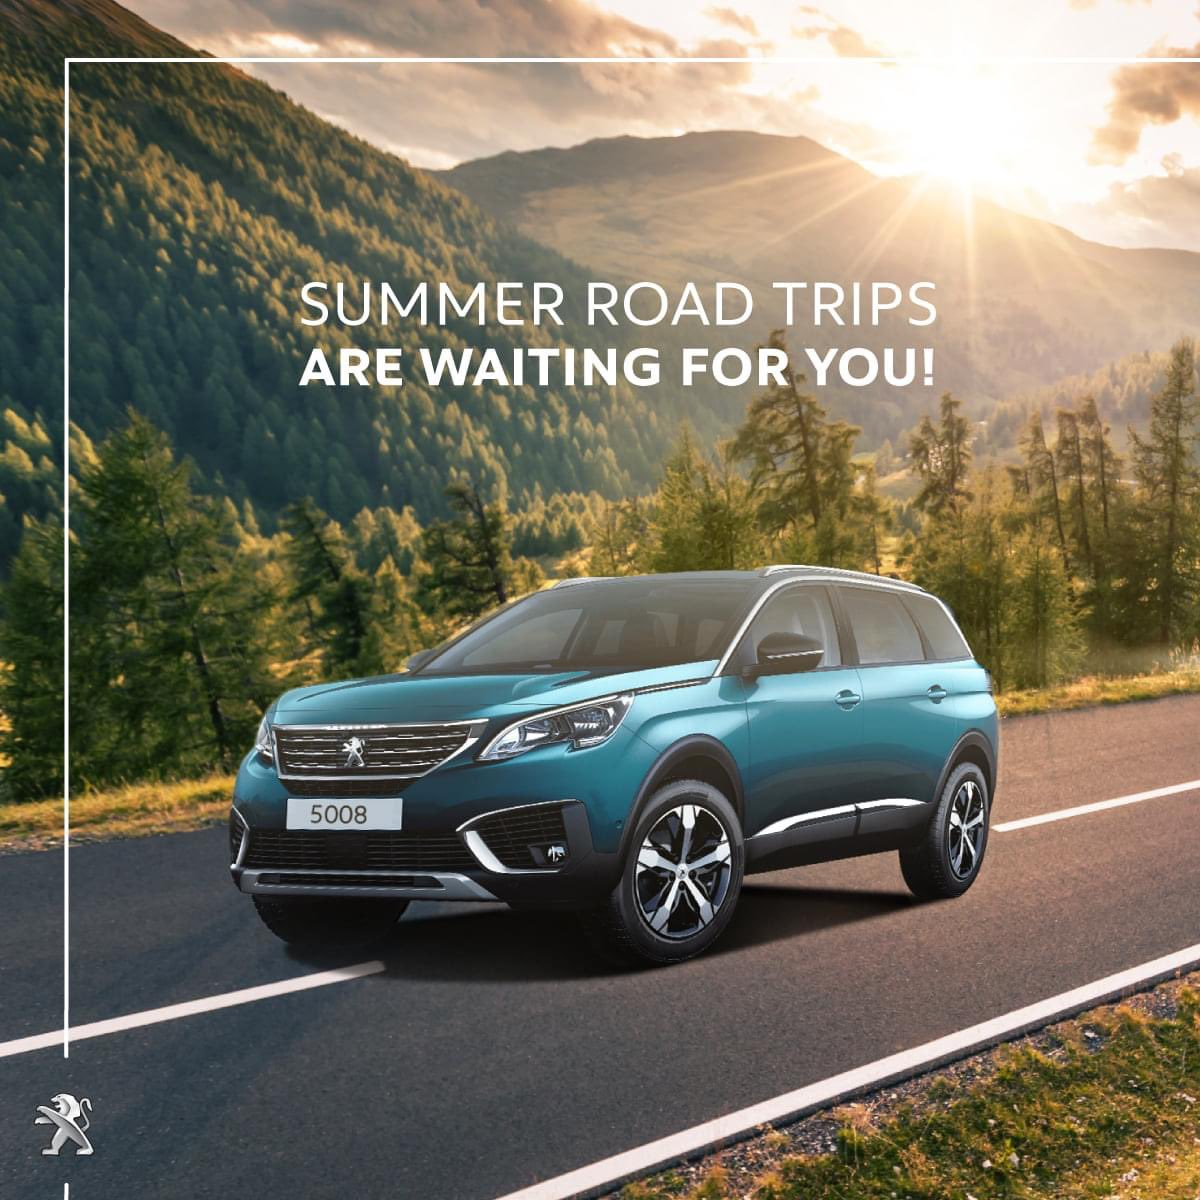 Rediscover summer with Peugeot 5008 SUV! #Peugeot #Peugeot5008pic.twitter.com/DWK9D4IU81